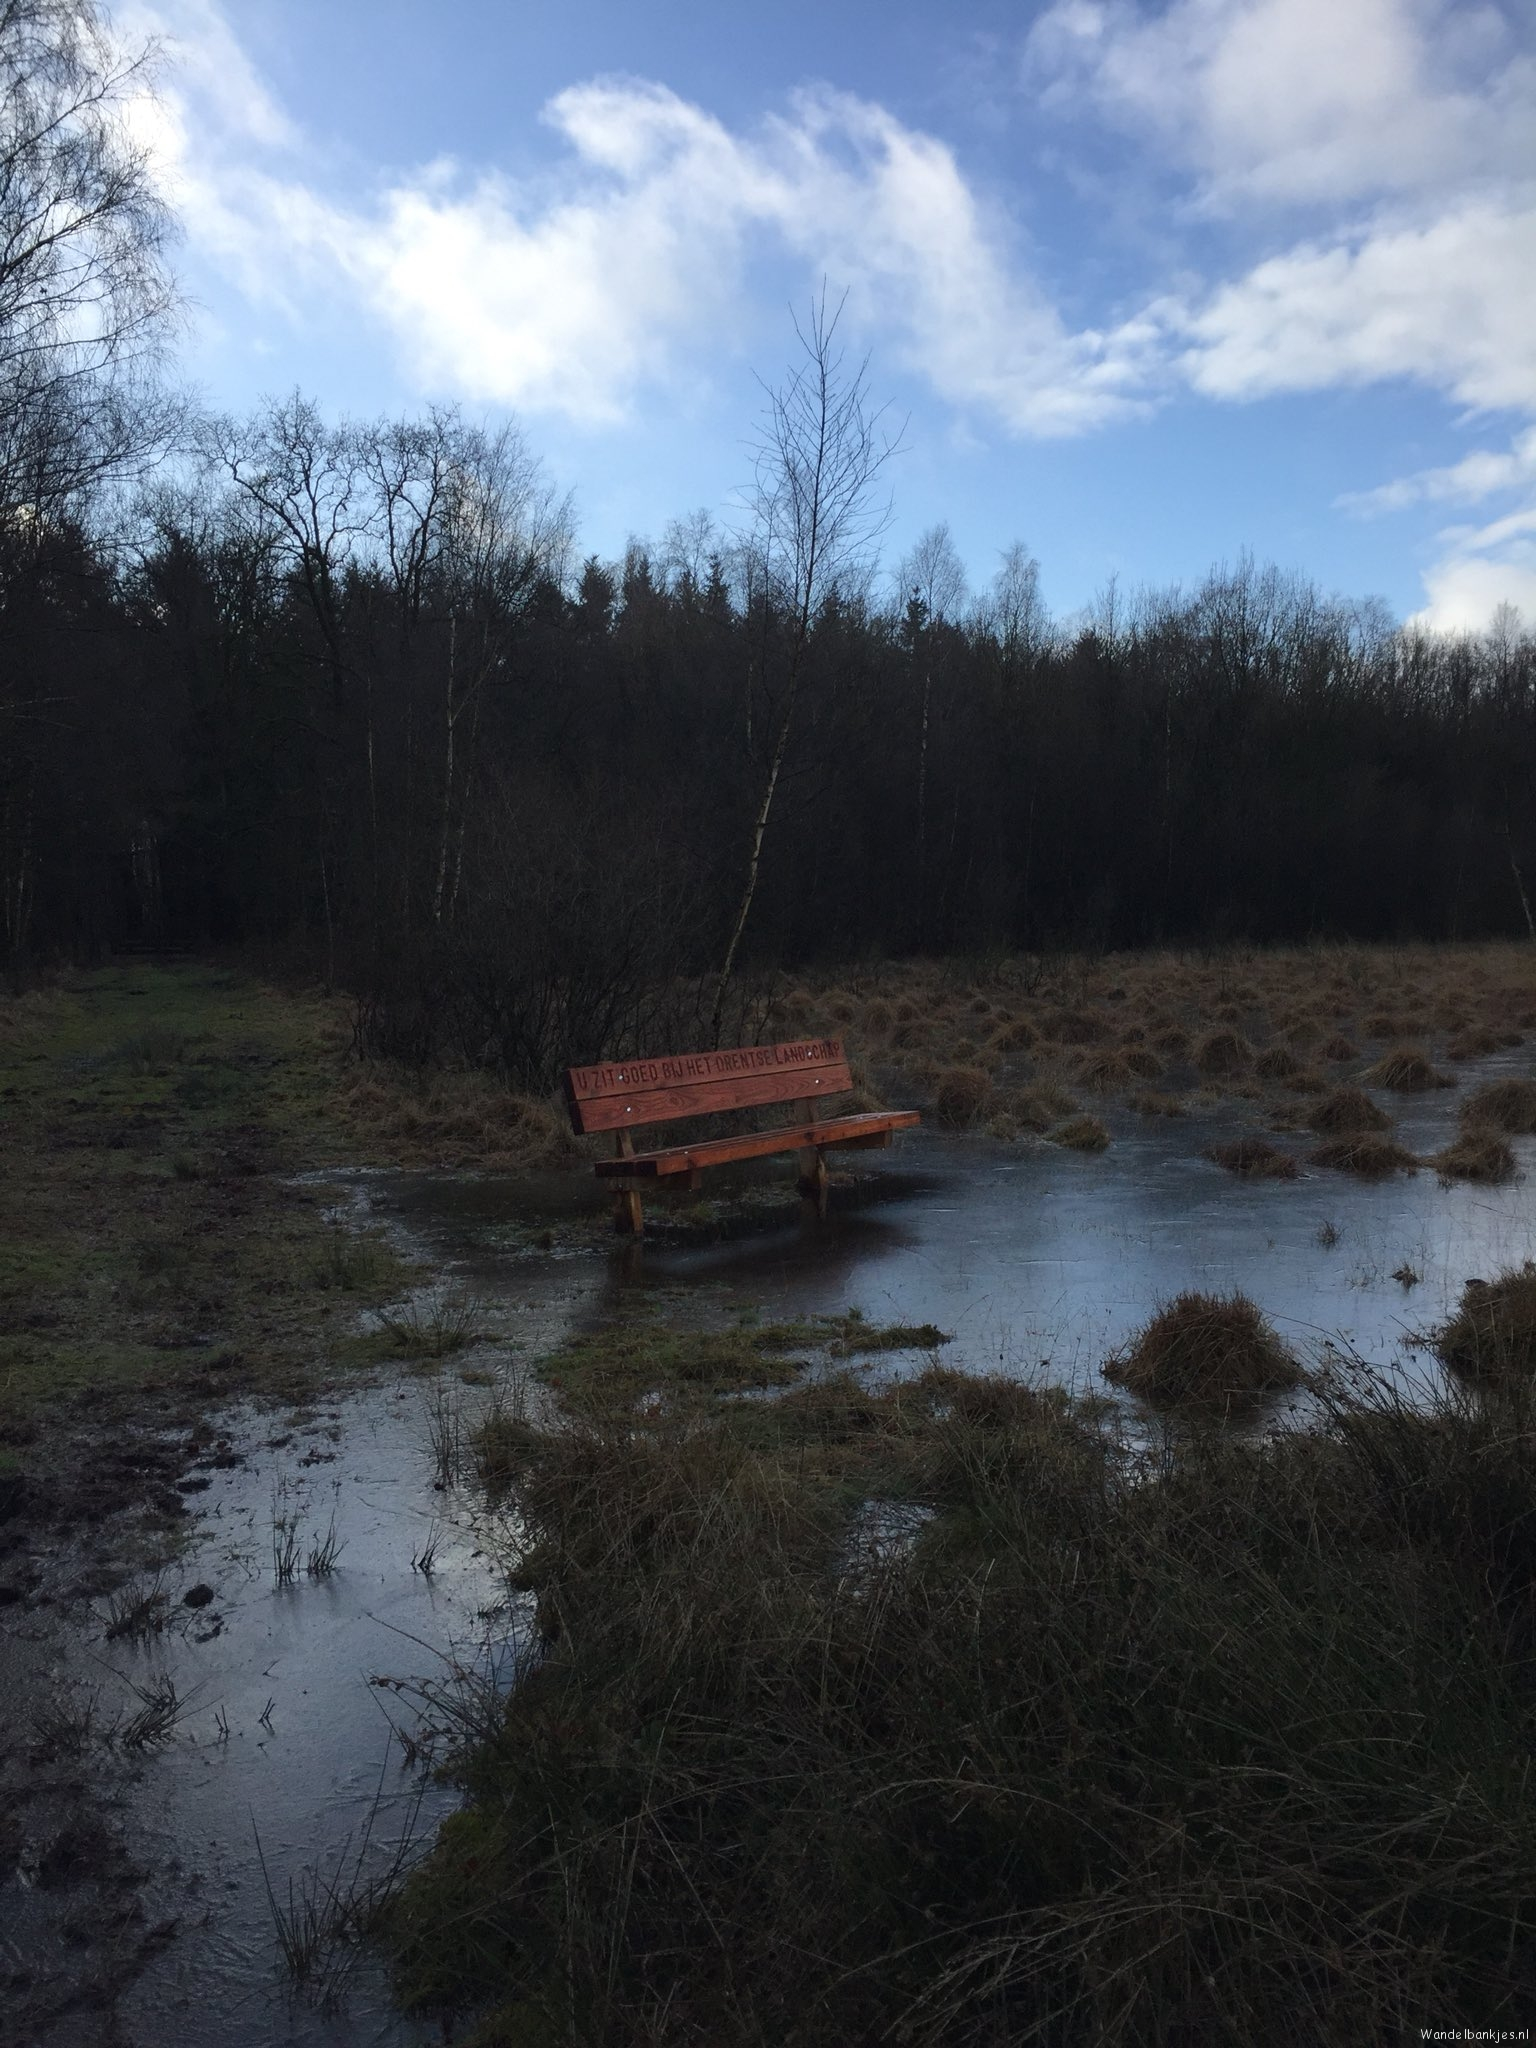 rt-gertientje-er-staat-a-nice-new-bench-on-the-fox-mountain-but-it-is-a-little-wet-walkersbenches-walkers-https-tc